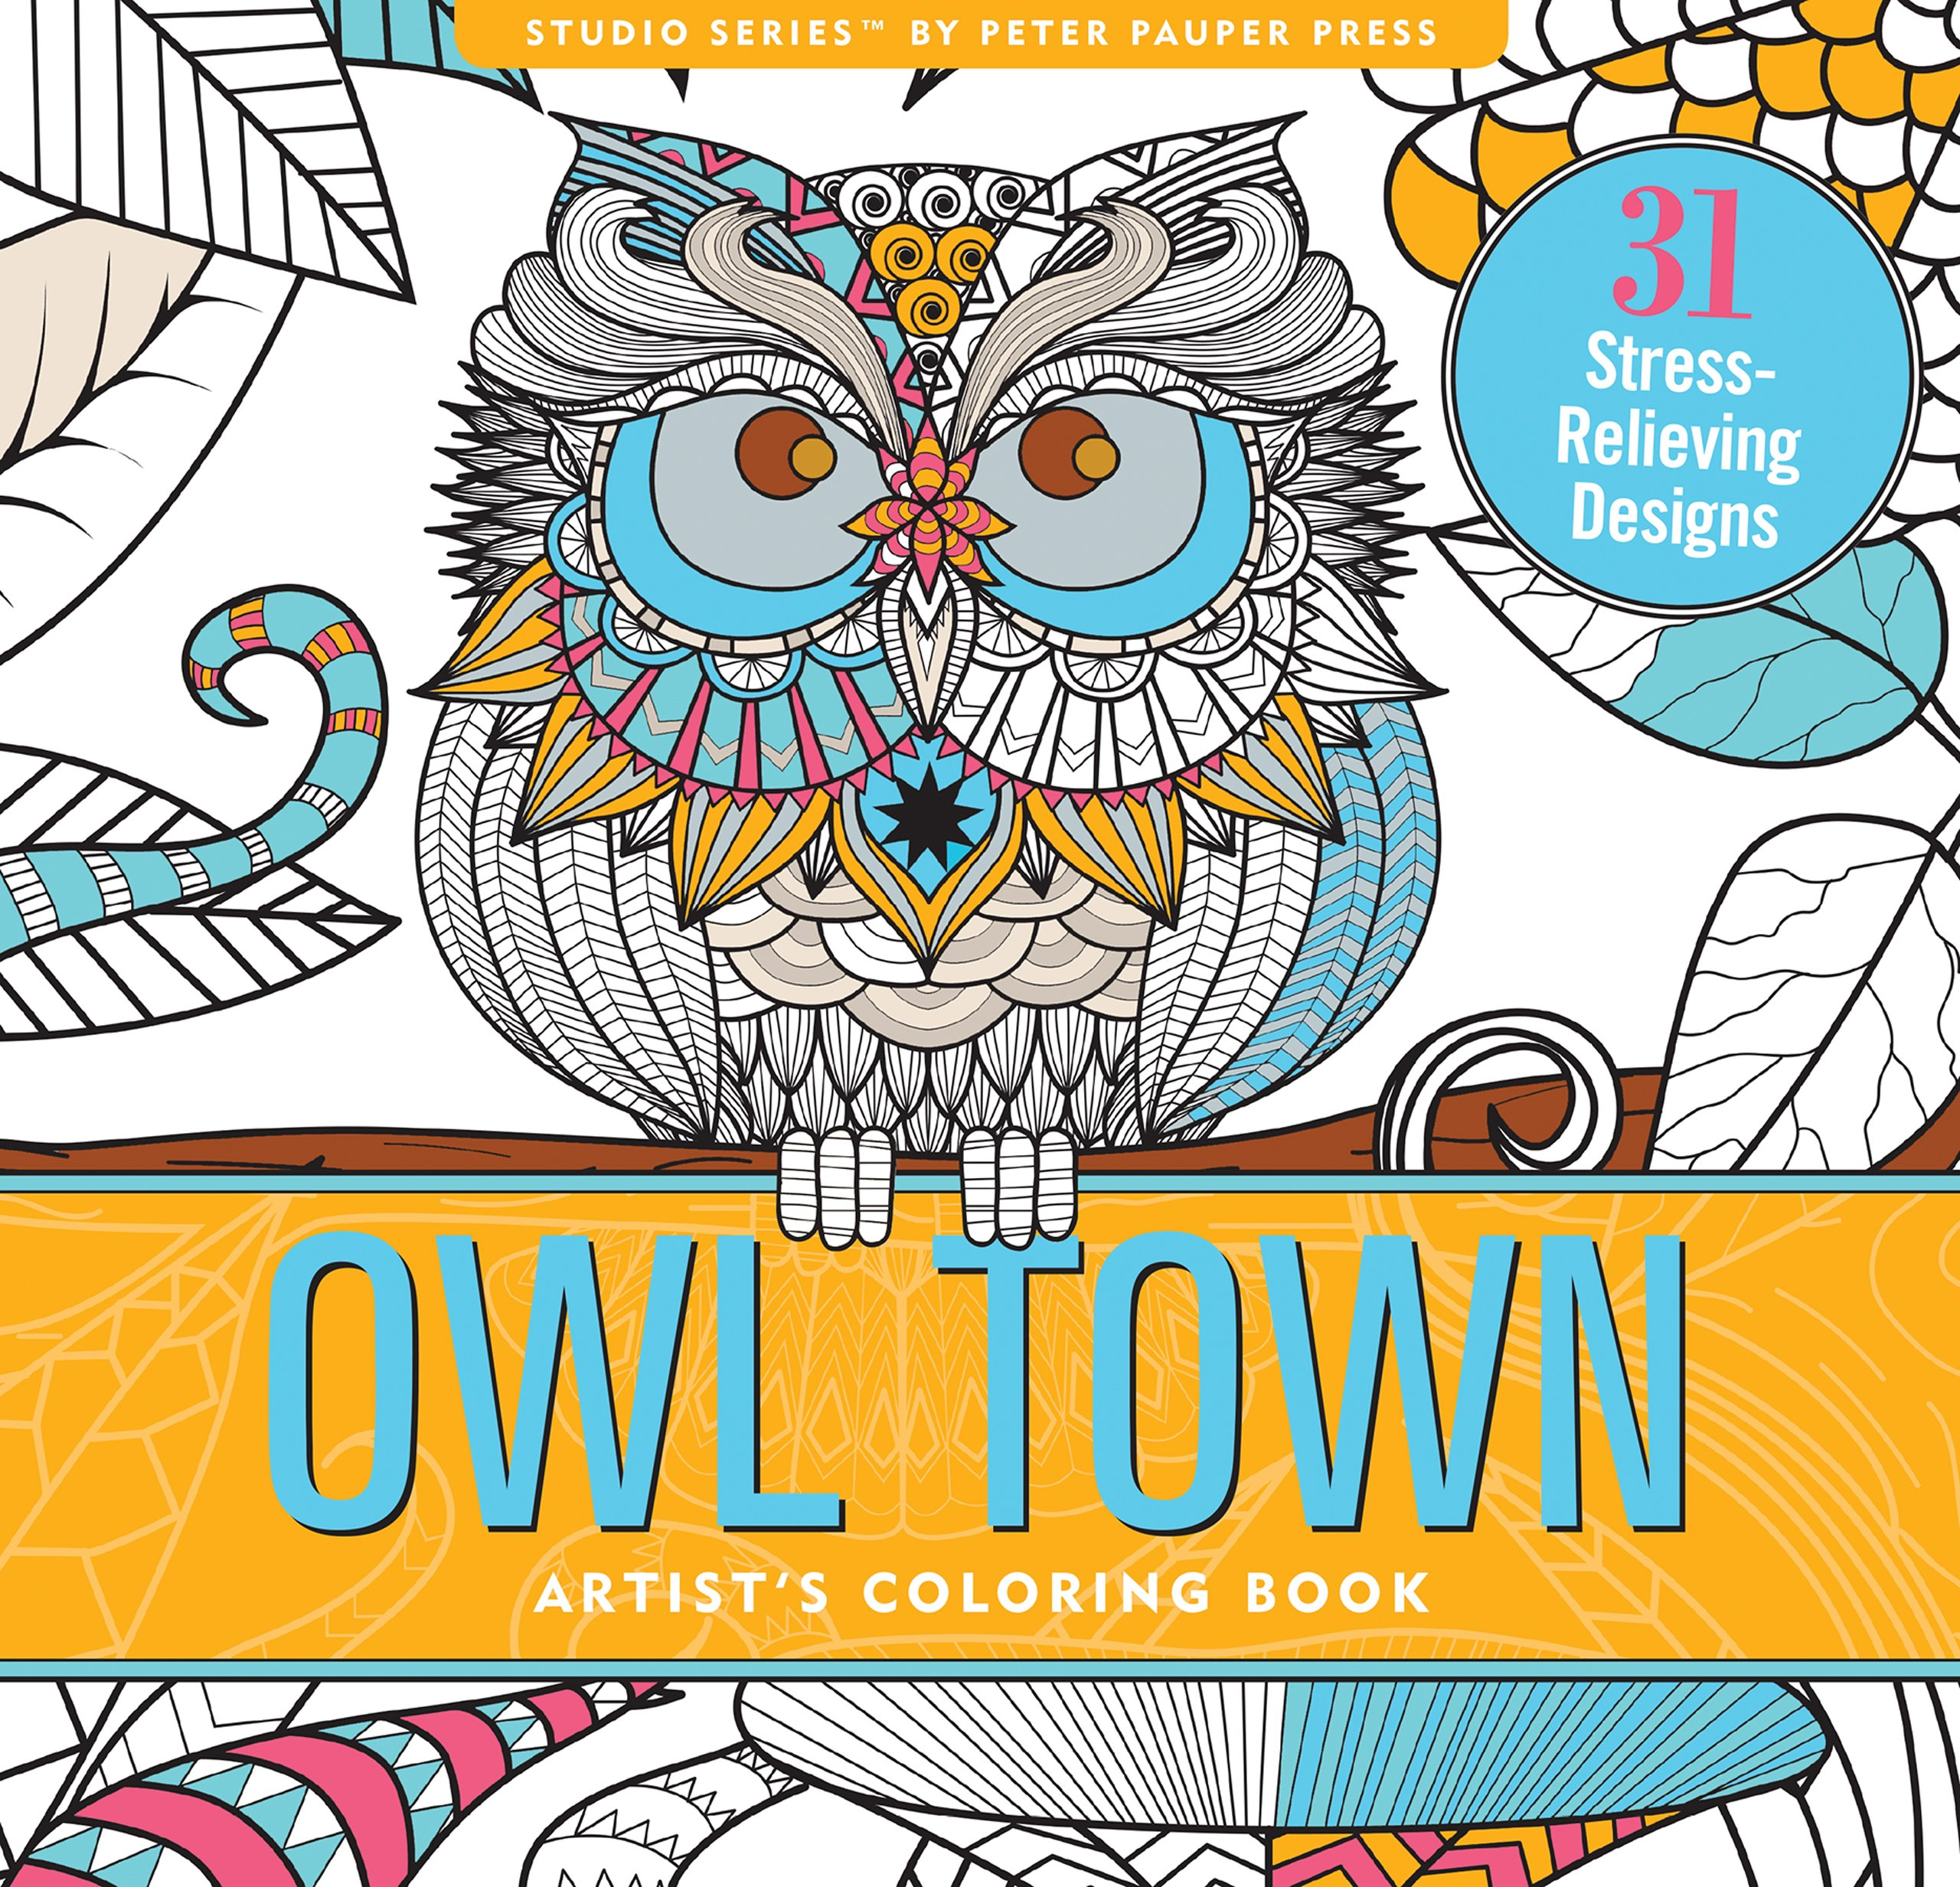 Coloring books for artists - Amazon Com Owl Town Adult Coloring Book 31 Stress Relieving Designs Studio Series 9781441321213 Peter Pauper Press Books